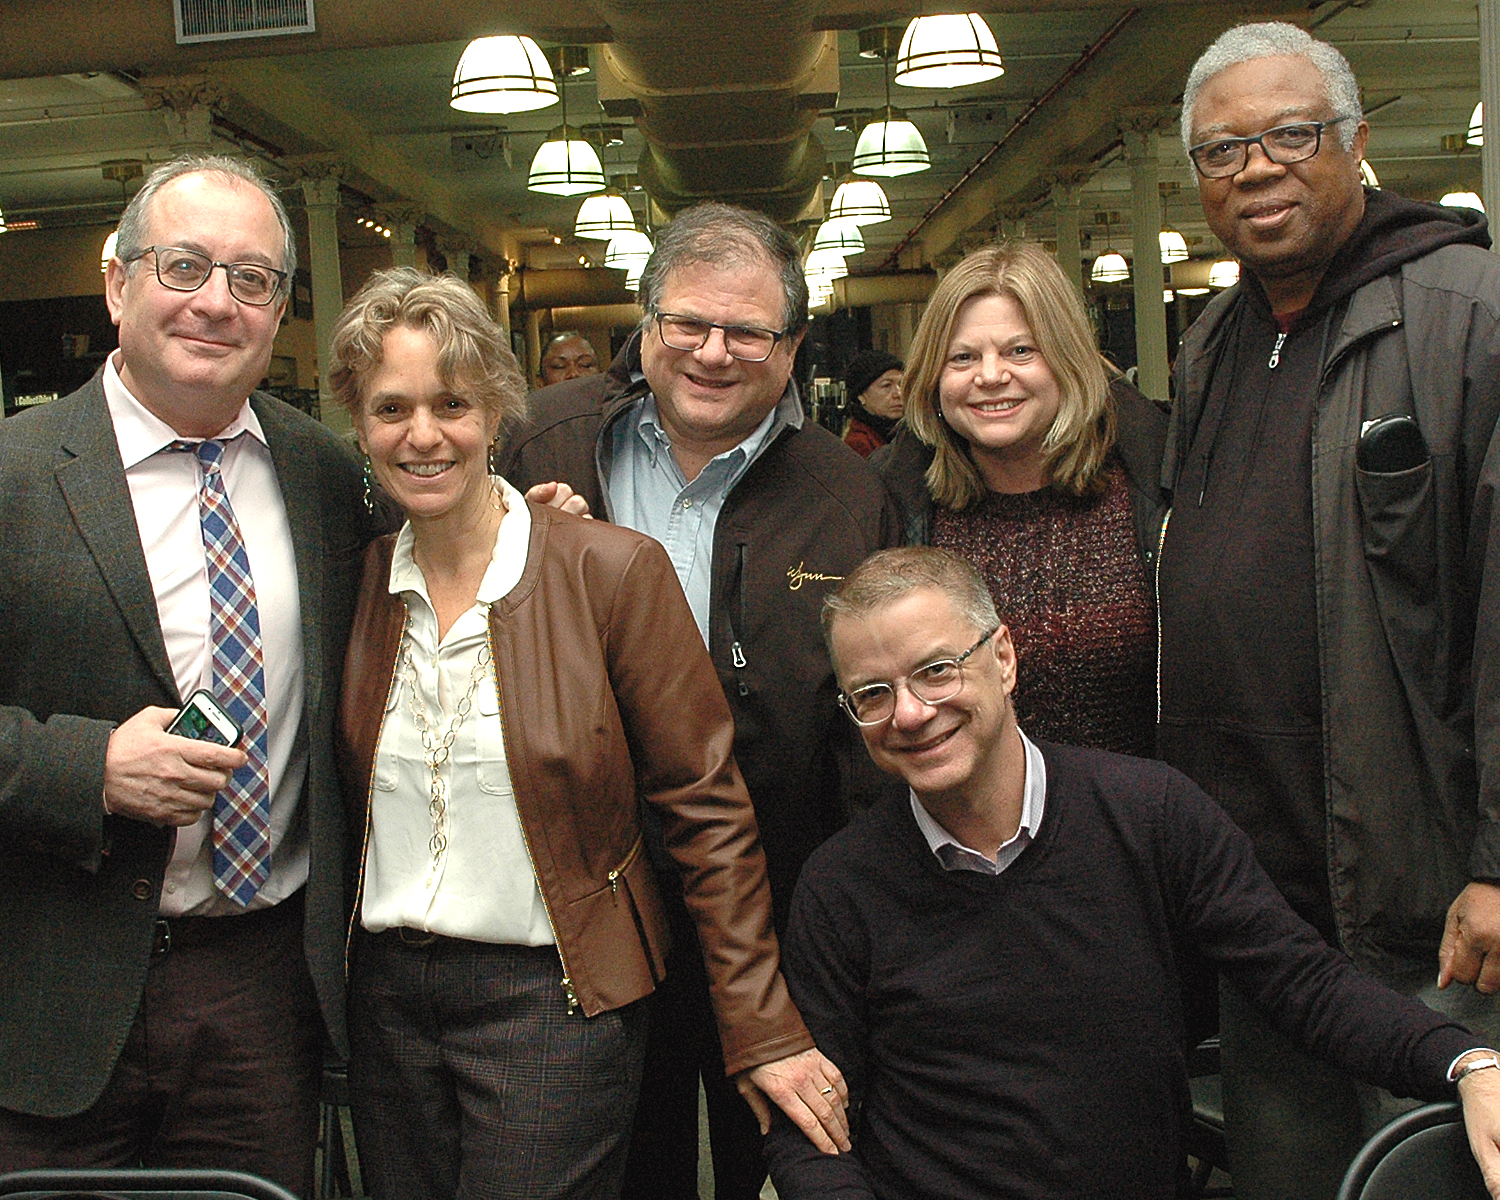 Sharen Duke with Board Members: William Toler, Allen Zwickler, Mitch Markson, Patrick Maher and Caren Levine, Zwickler Foundation